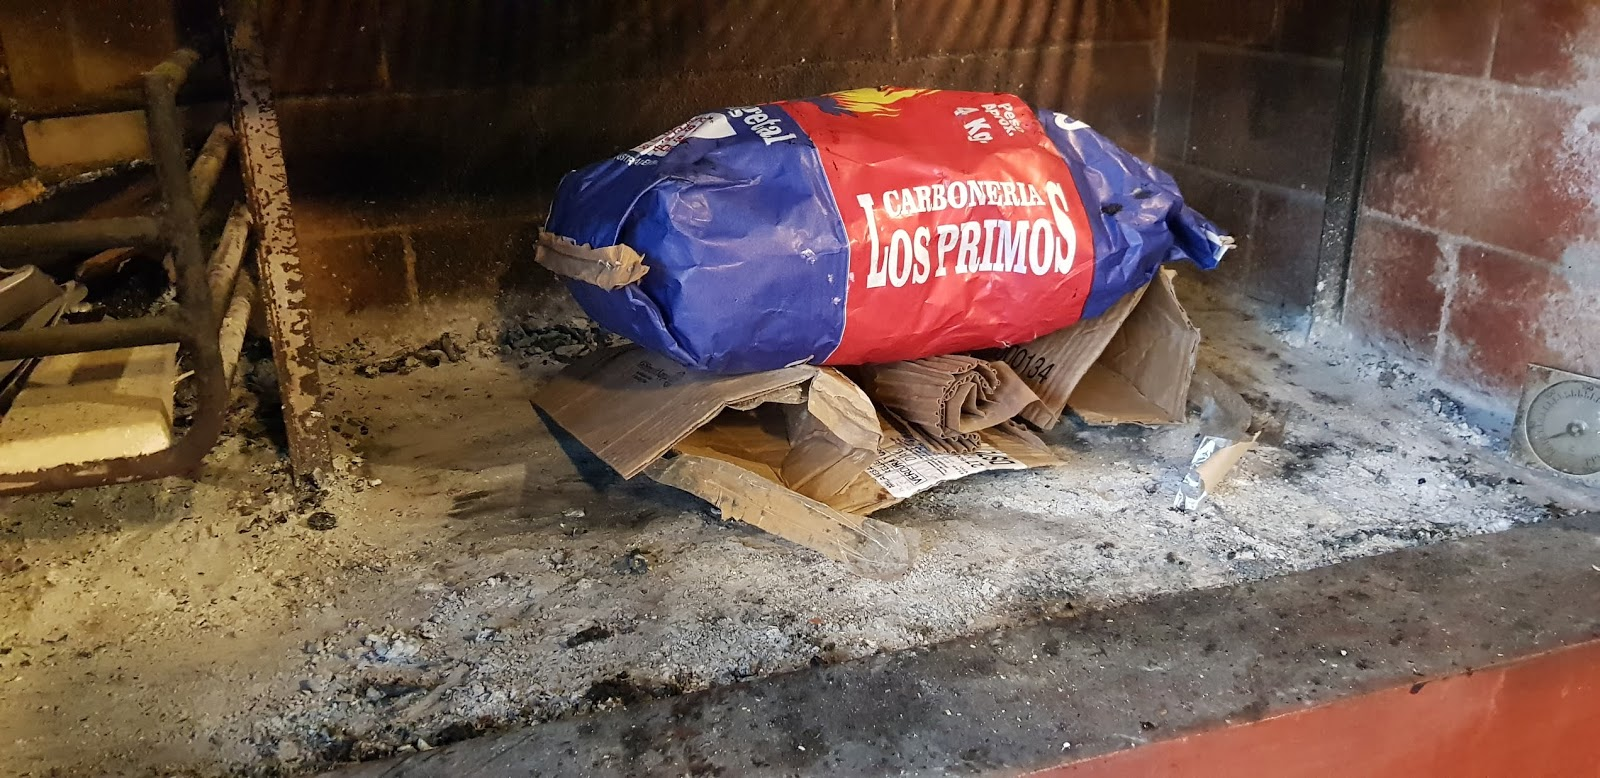 Parrilla with carton fire